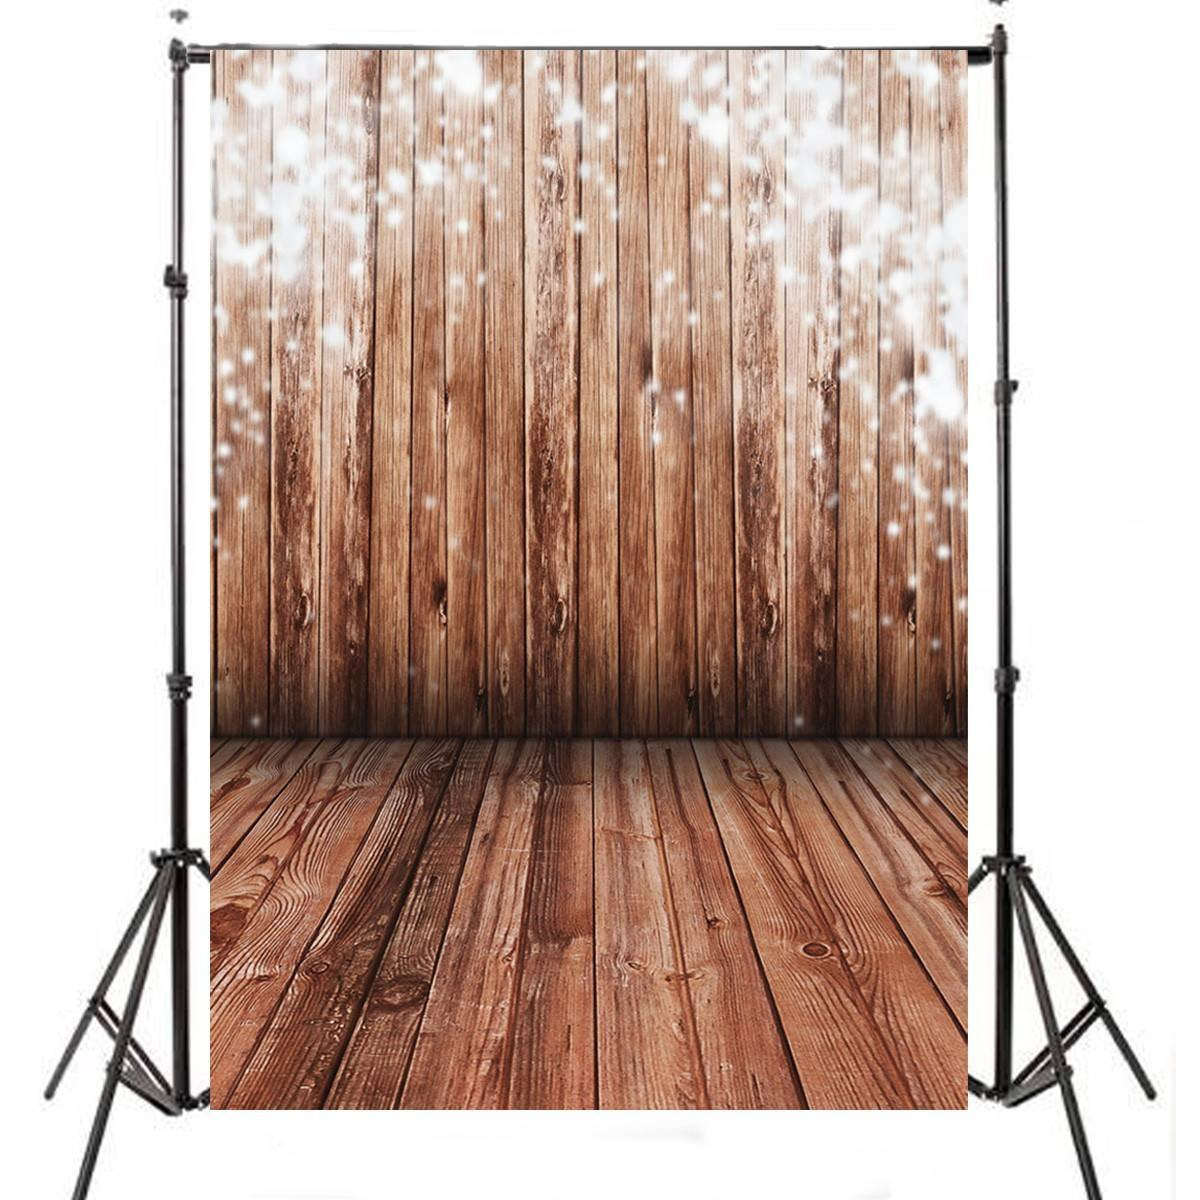 5x7FT Wood Wall Vinyl Photography Backdrop Photo Background Studio Props High Quality New Best Price hollywood banner backdrop high quality vinyl cloth computer printed party wedding backdrop photography studio background